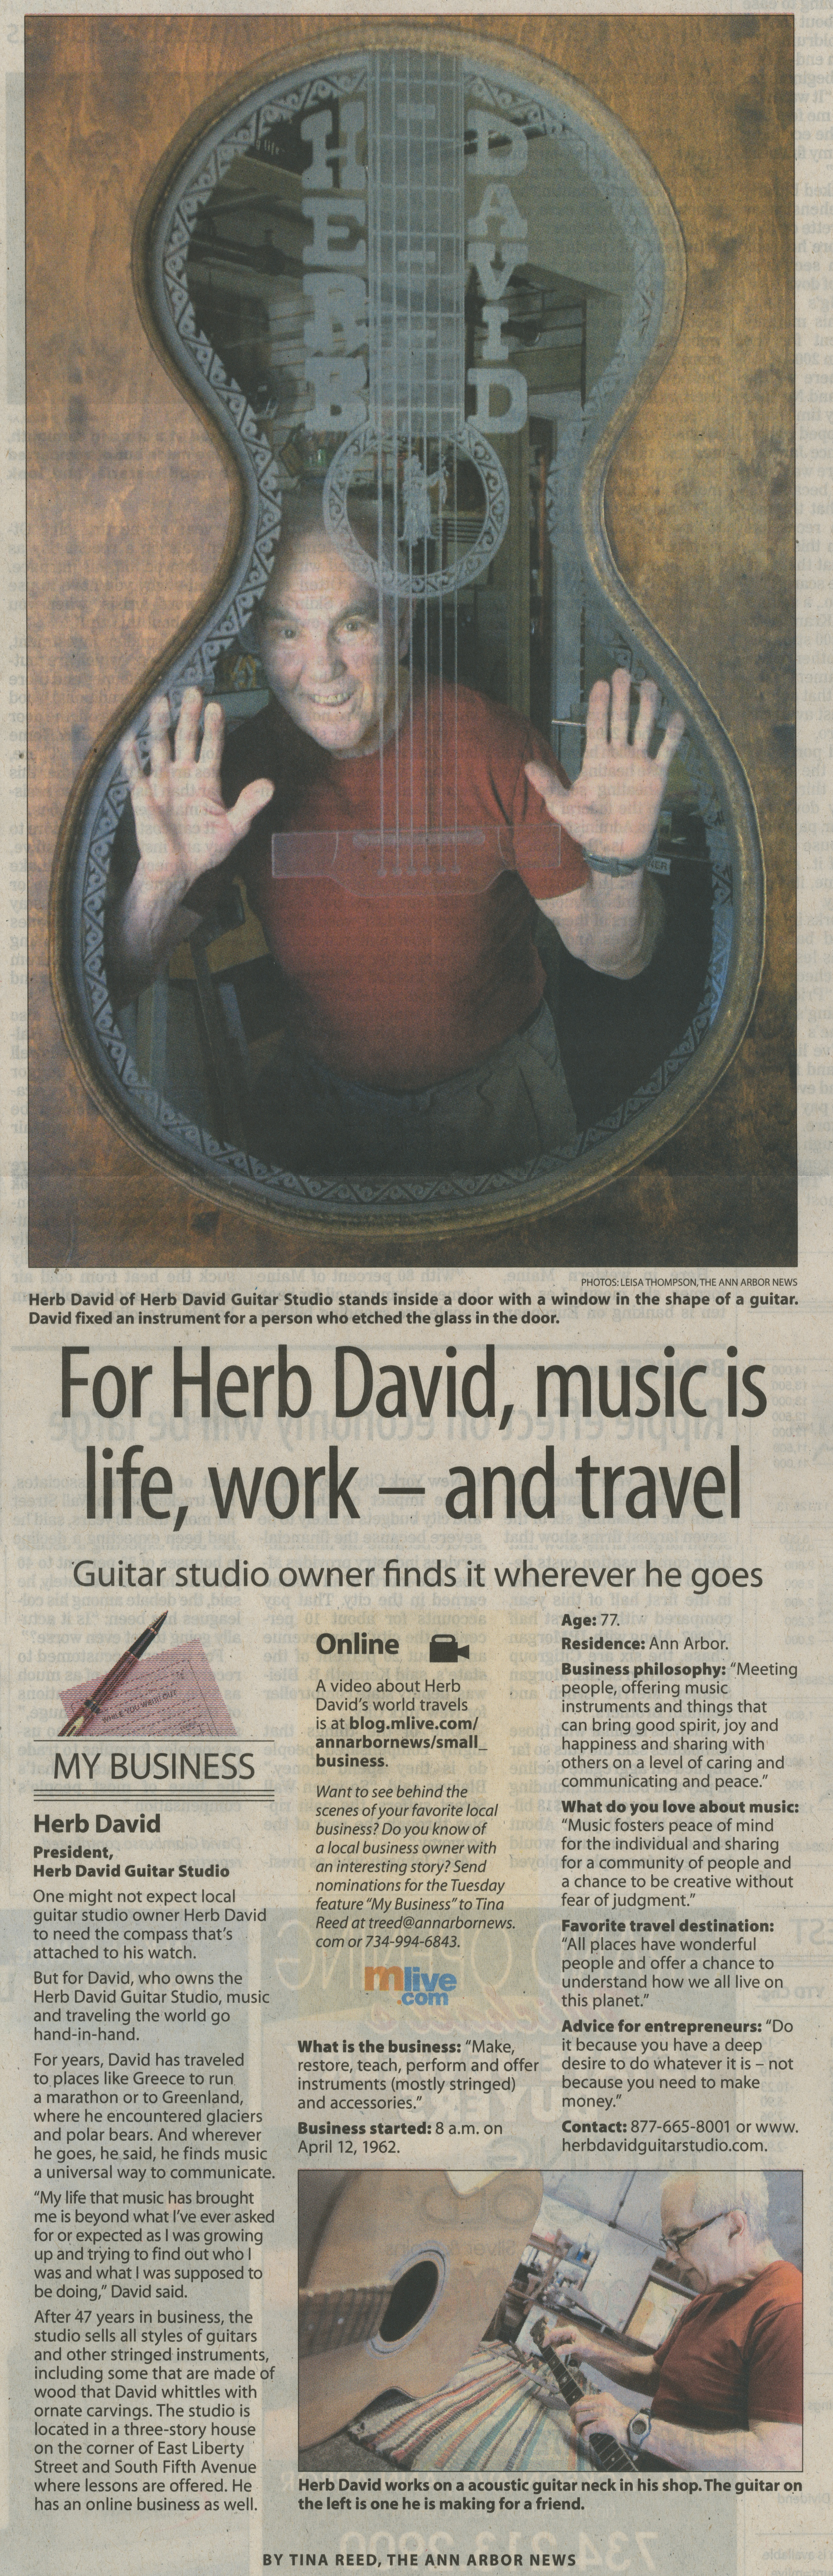 For Herb David, Music Is Life, Work -- And Travel -- Studio Owner Finds It Wherever He Goes image